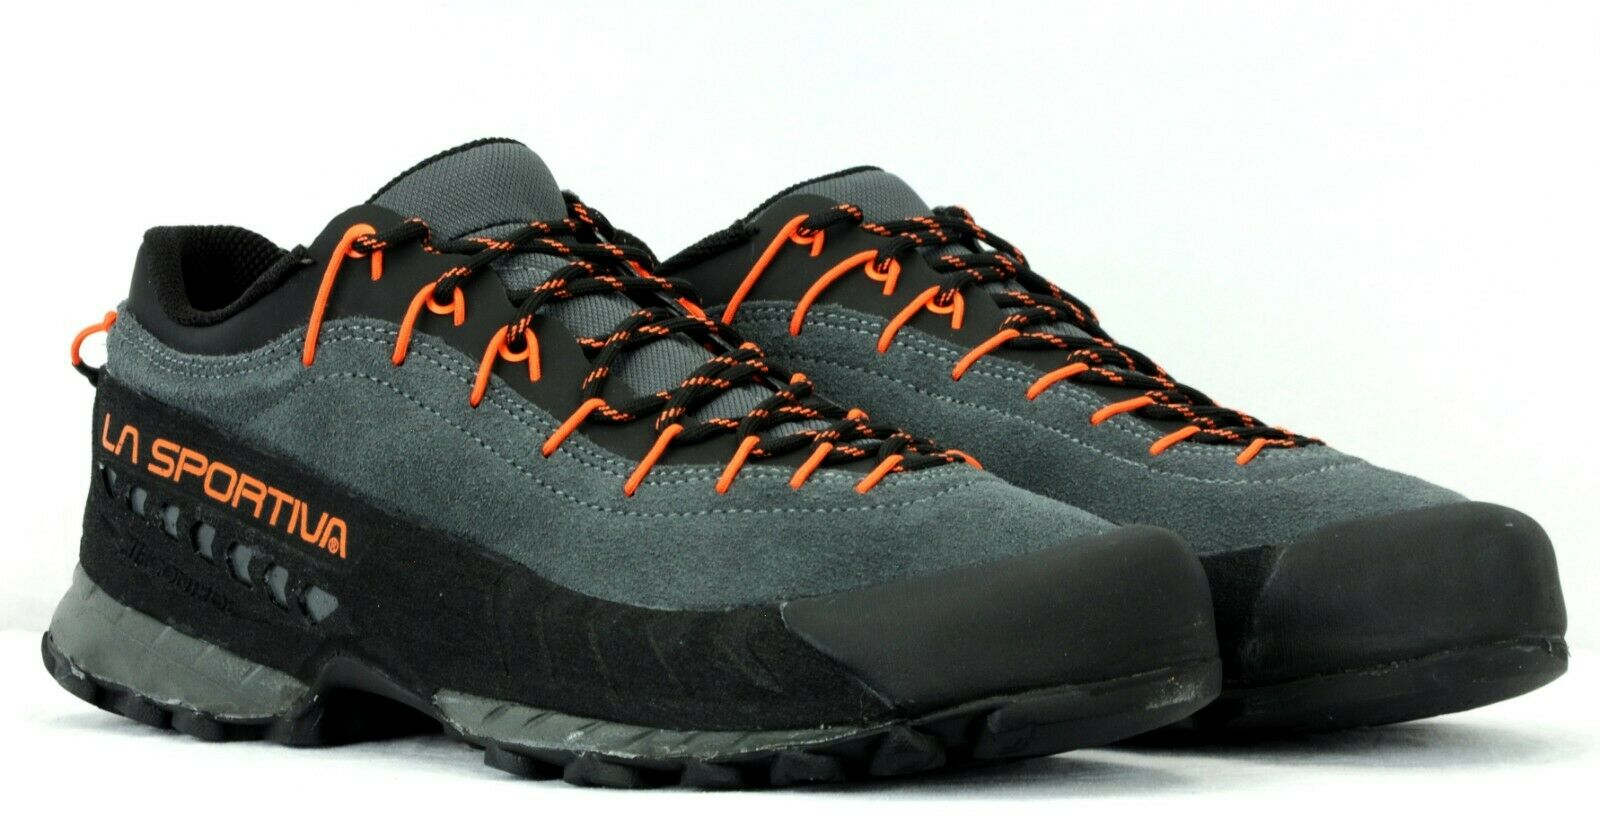 La Sportiva Men's TX4 Hiking Approach shoes 17W Carbon Flame Size 43 - 10 US